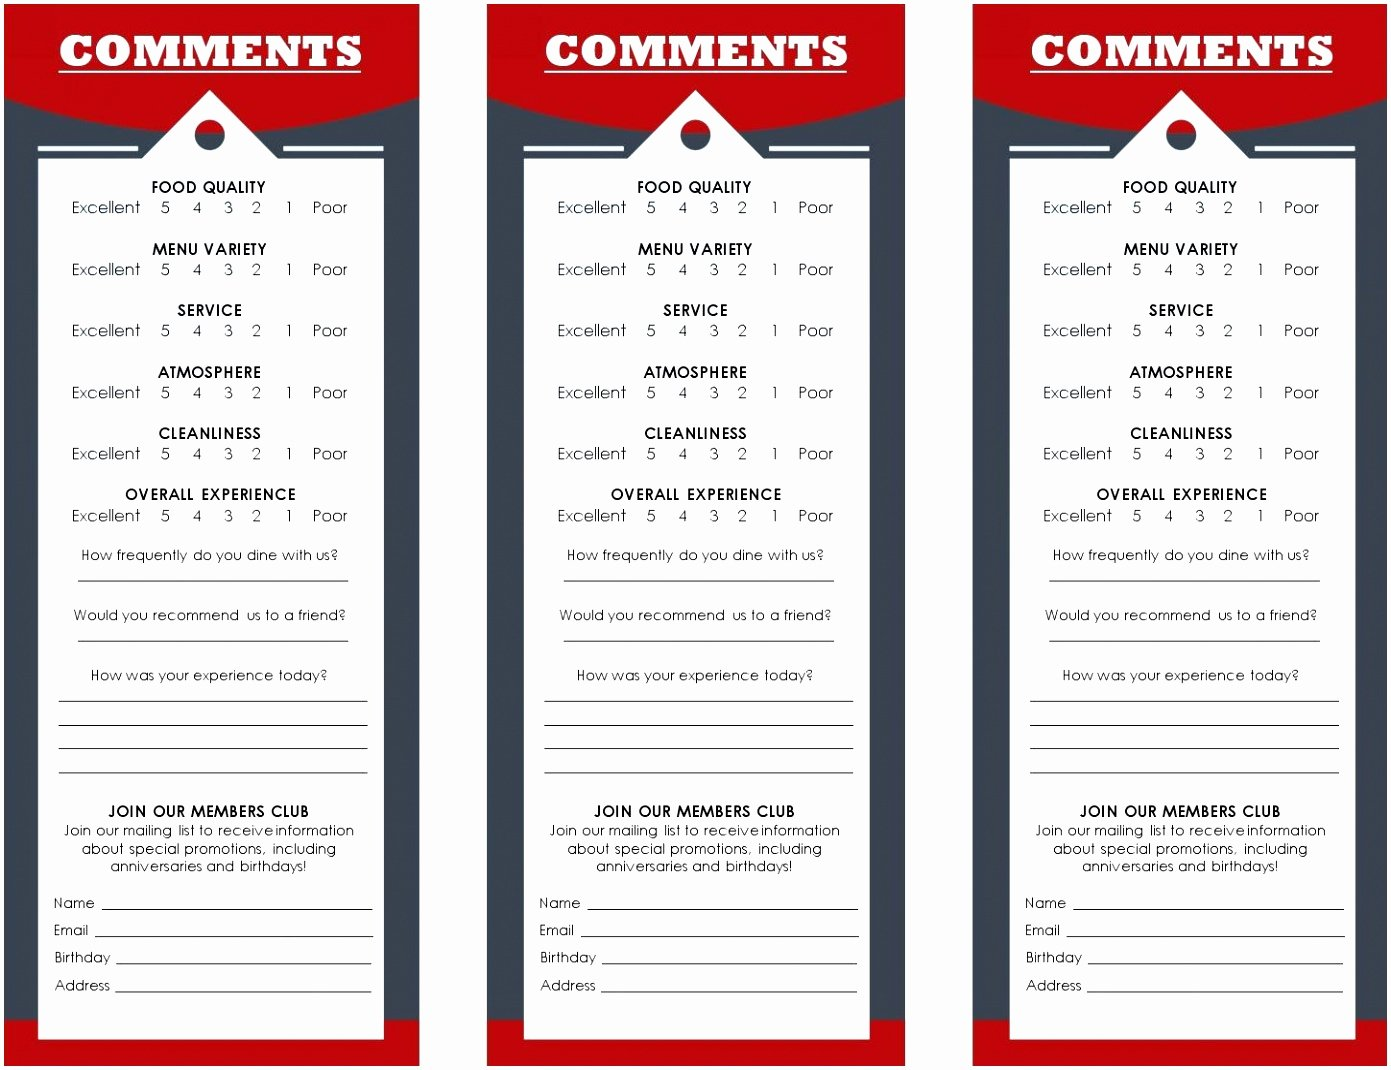 Restaurant Comment Card Example Fresh 9 Restaurant Ment Card Template Vrtwi